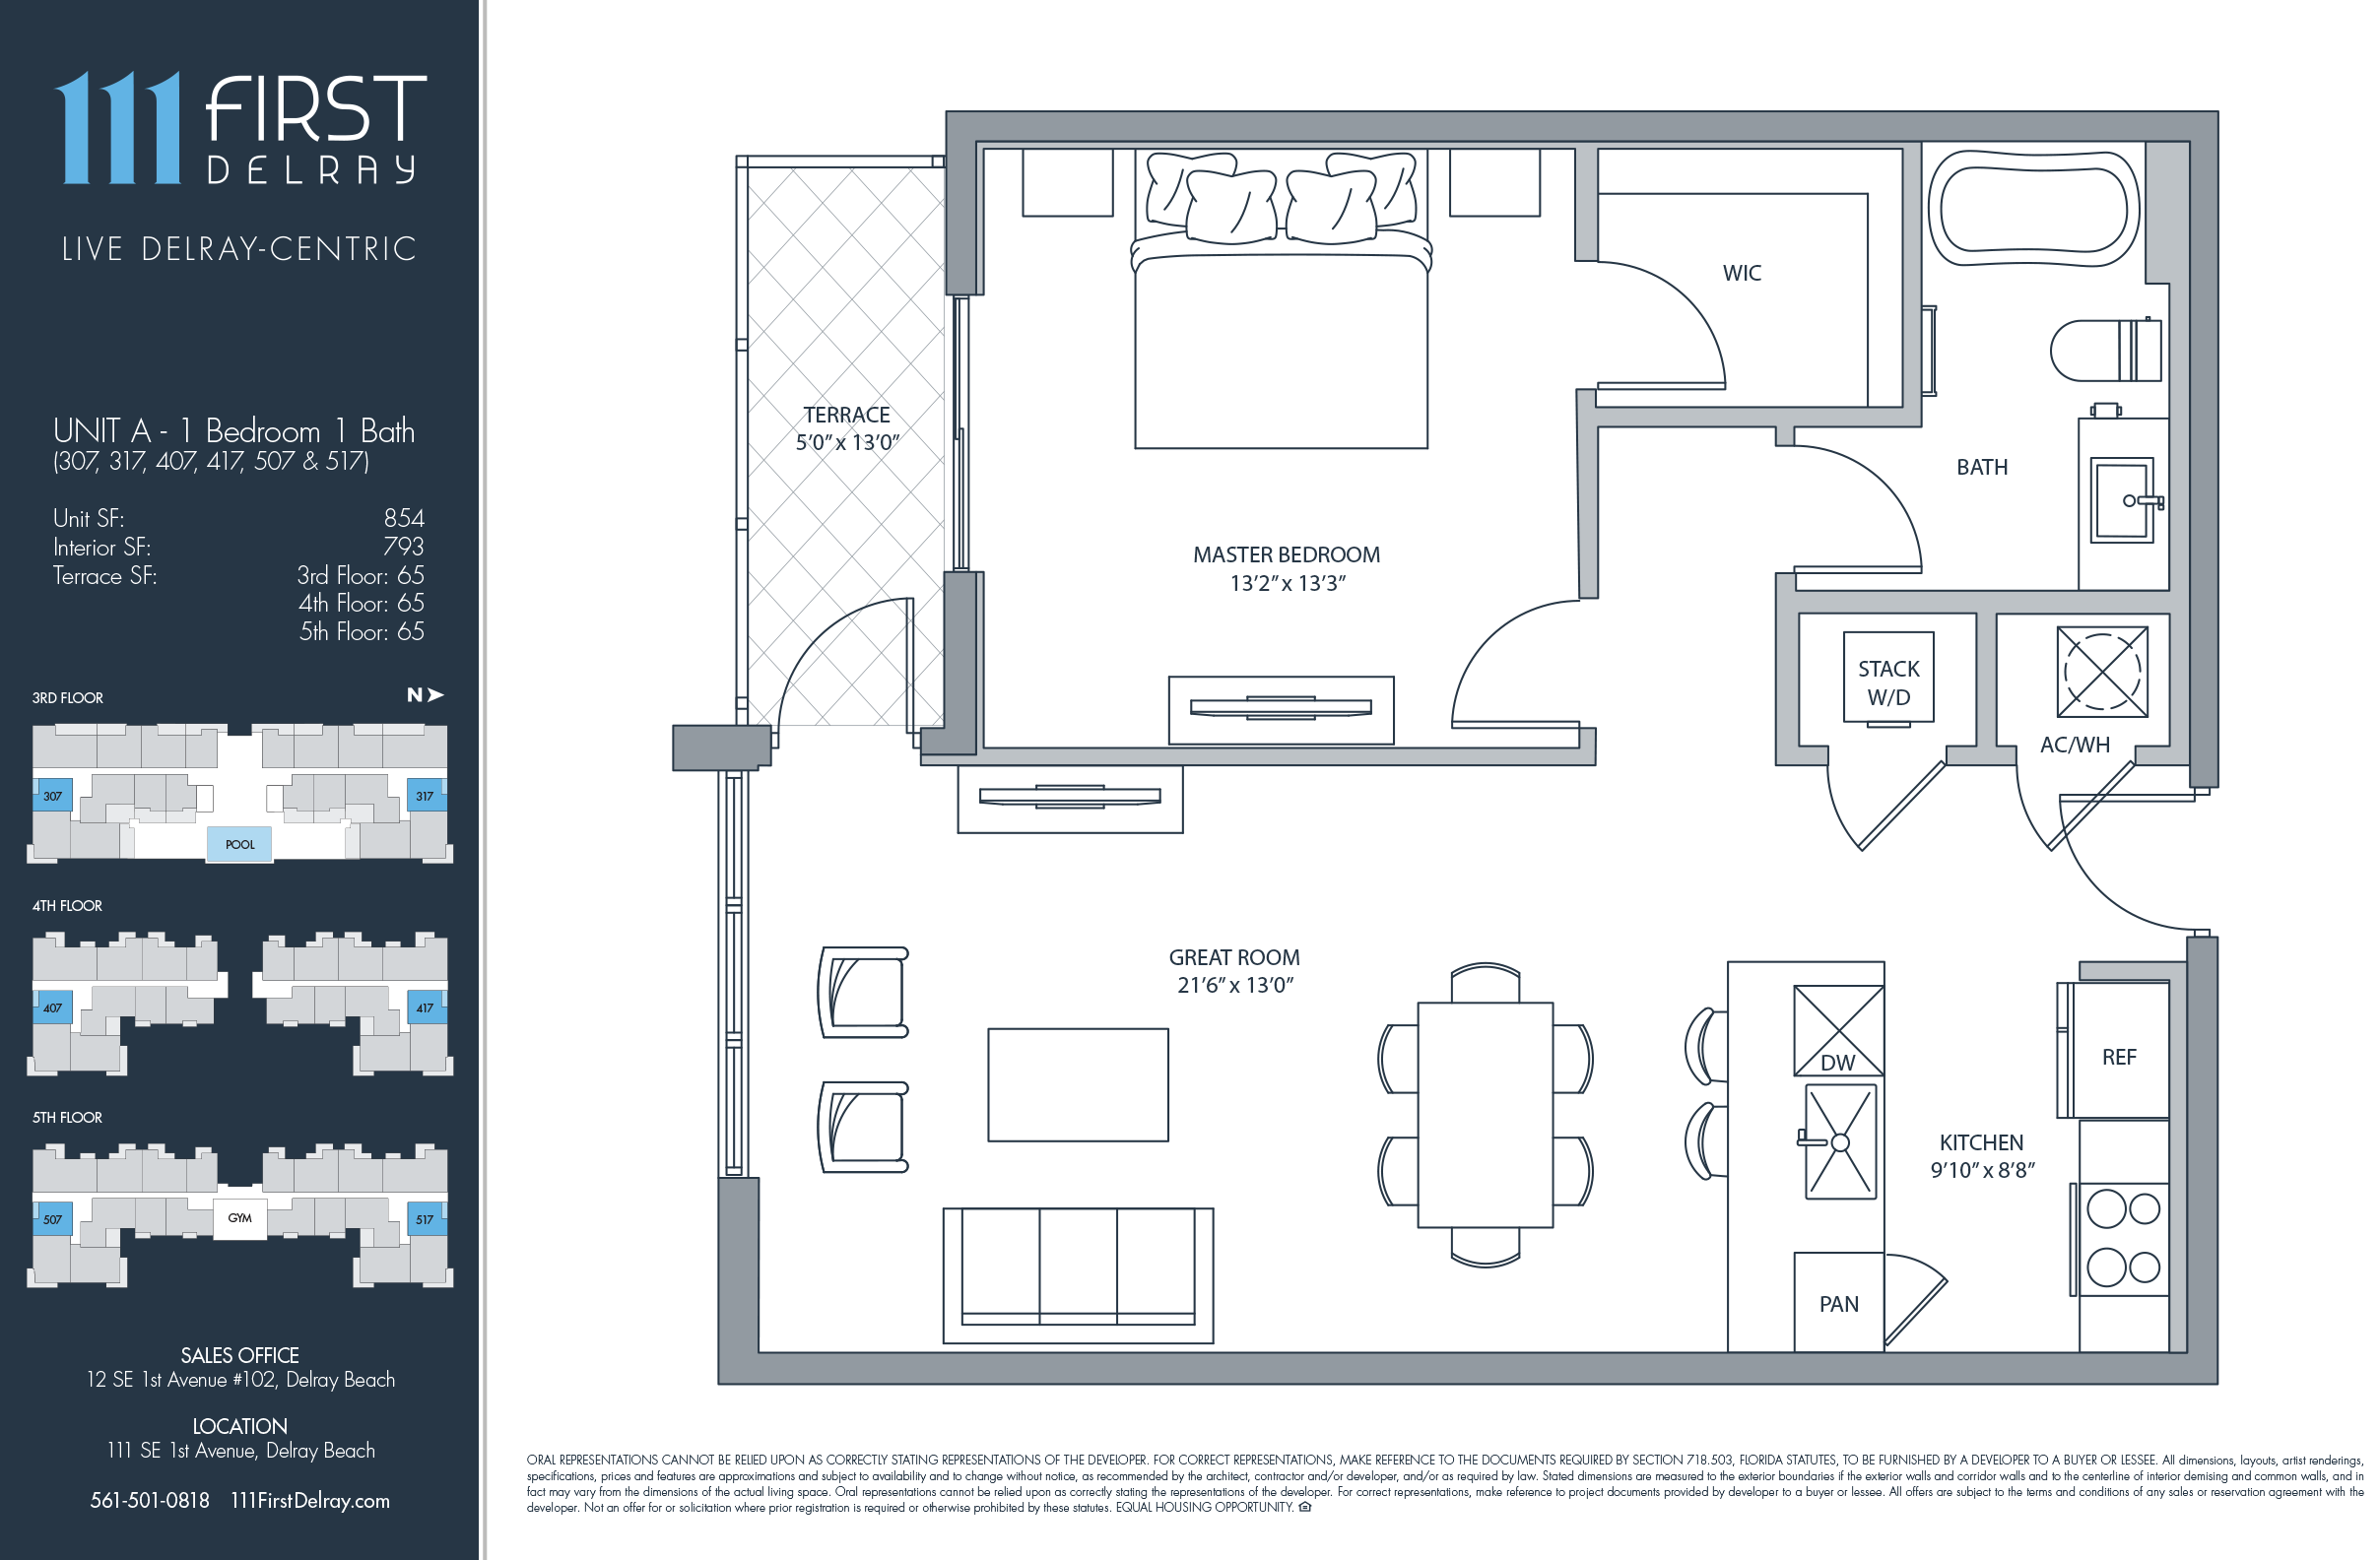 111 First Delray Beach Homes - Unit A